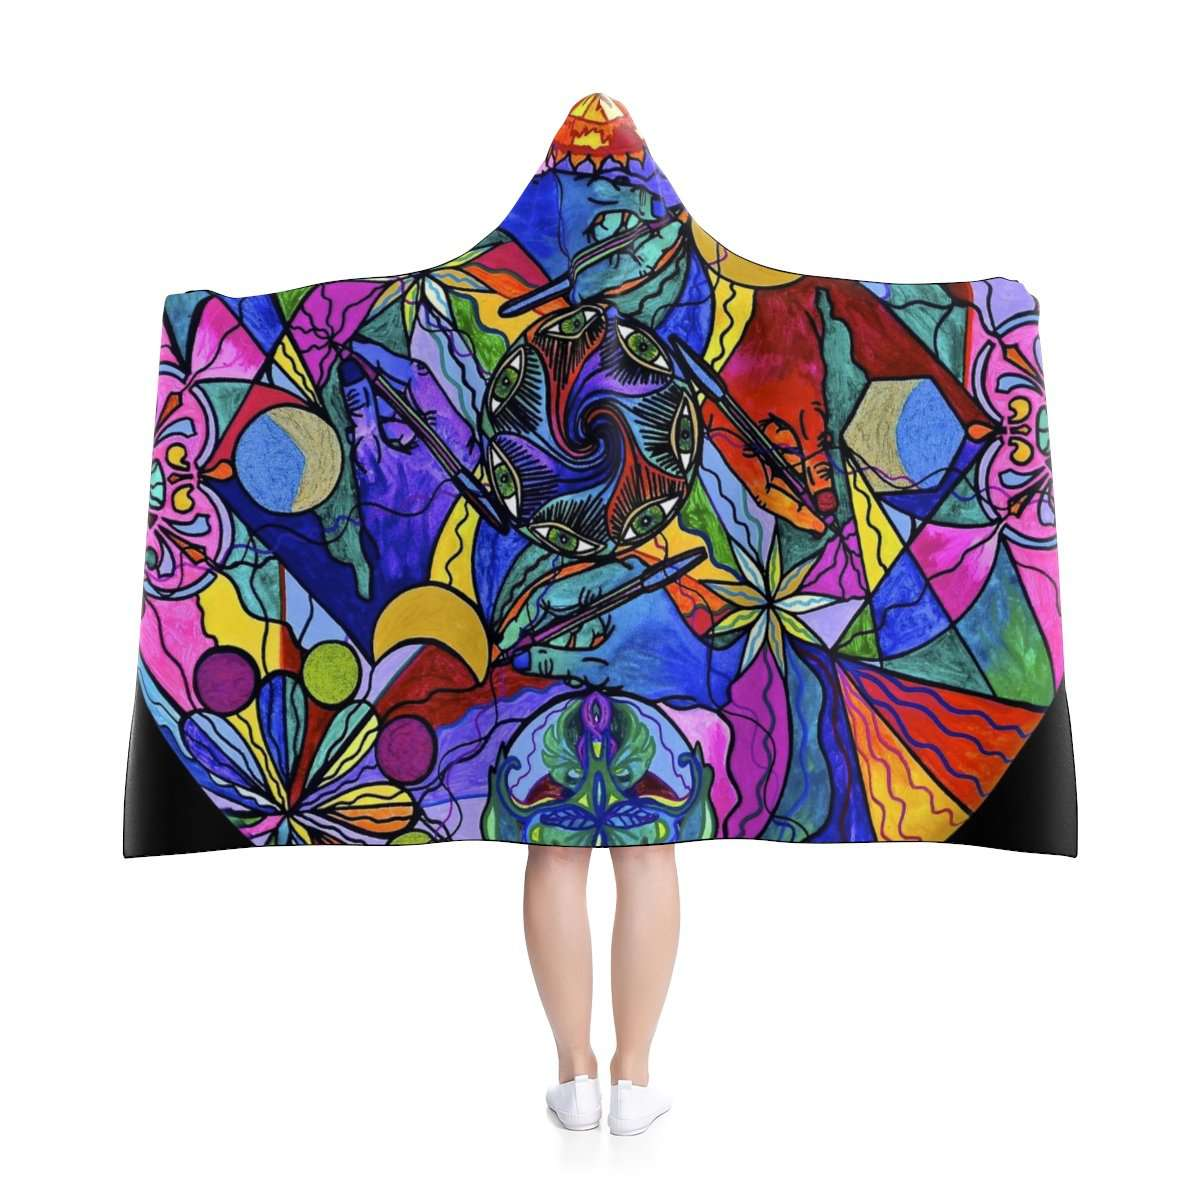 Awakened Poet - Hooded Blanket